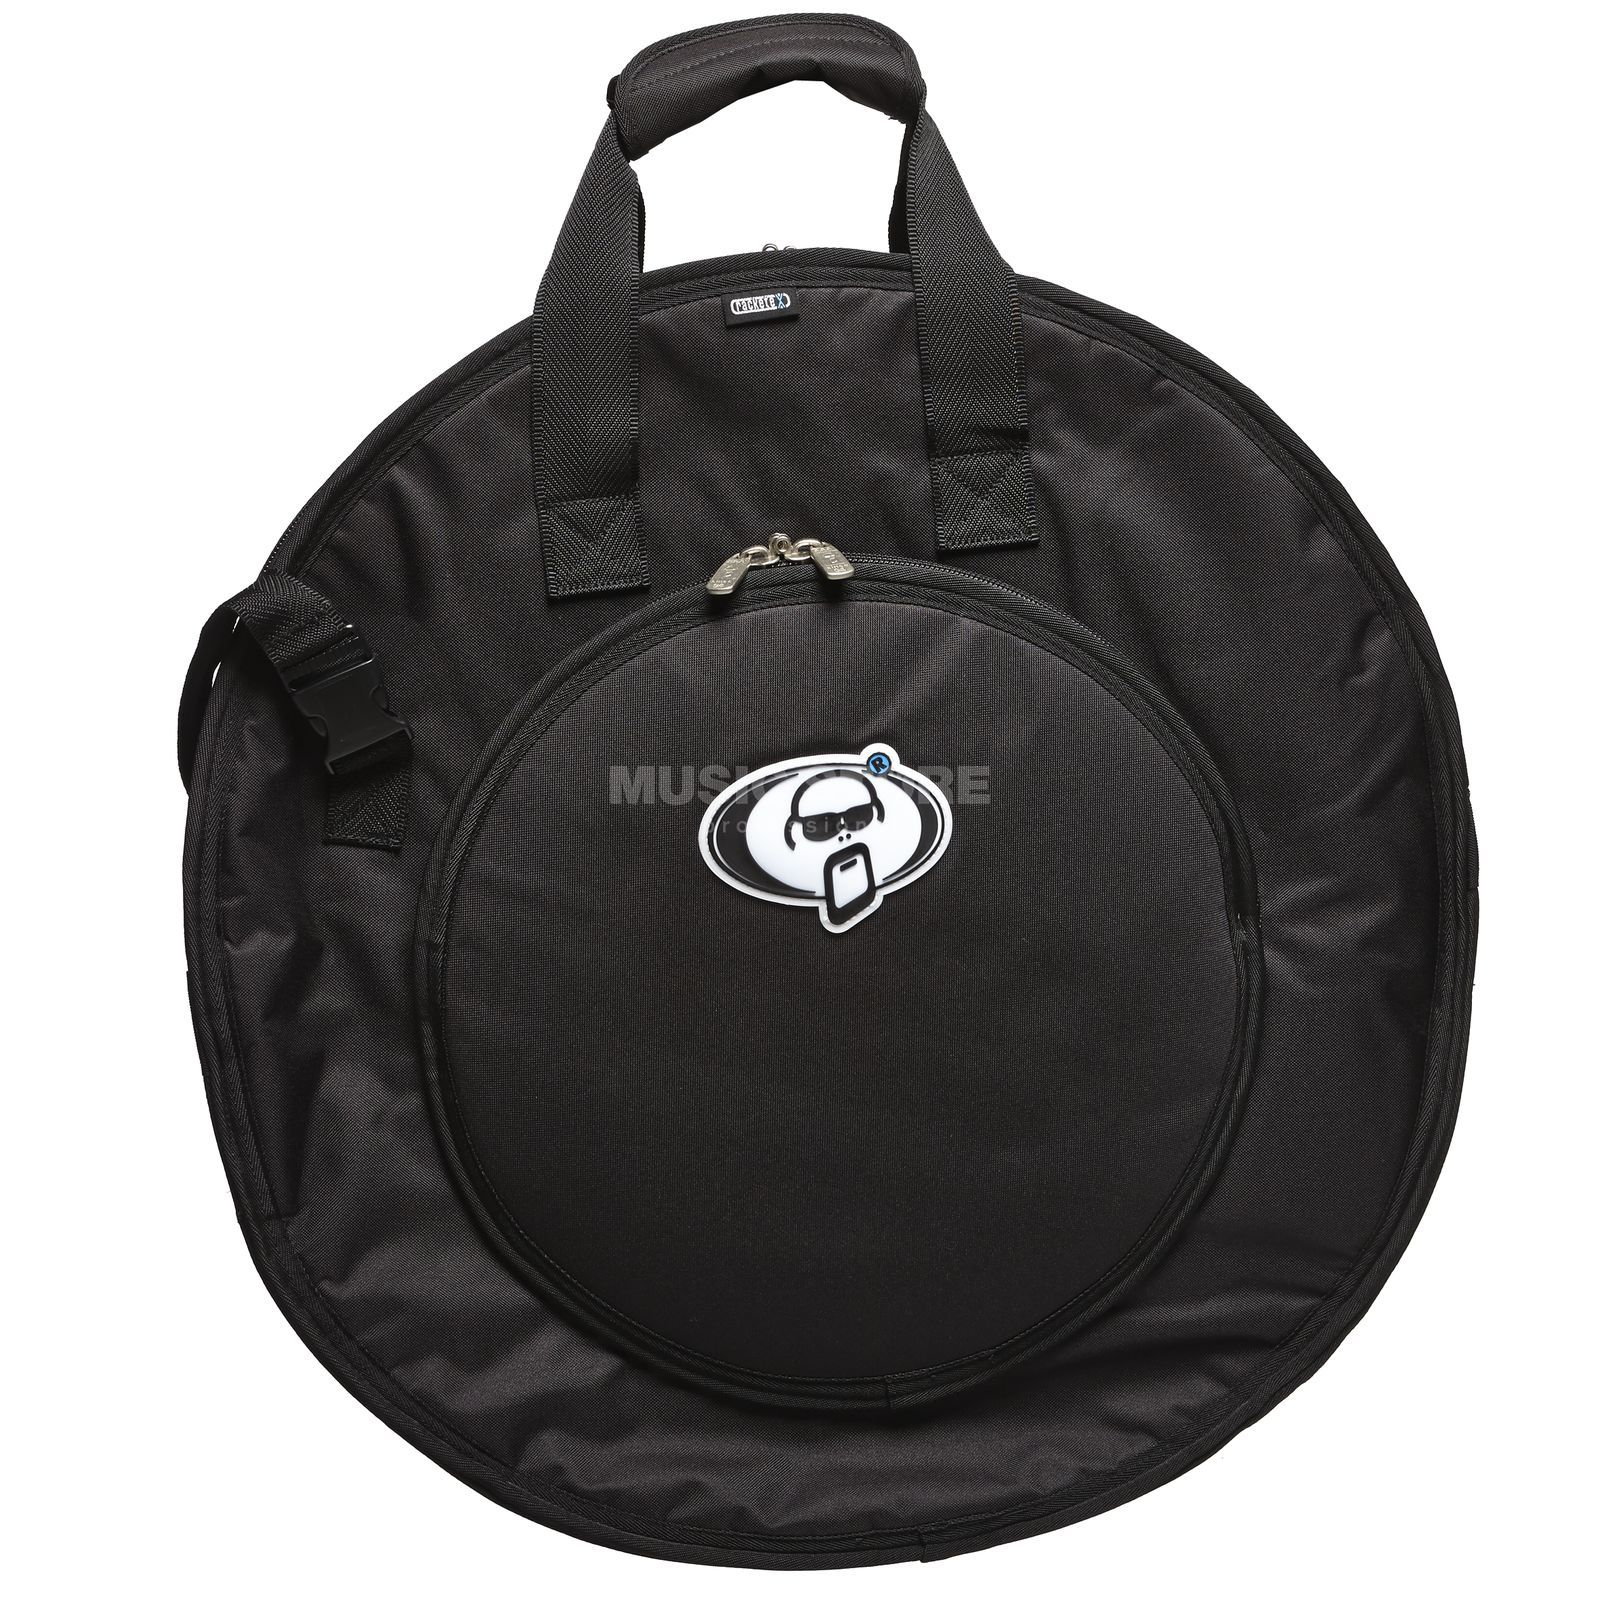 "Protection Racket Cymbal Bag Deluxe 6021, 24"" Produktbillede"